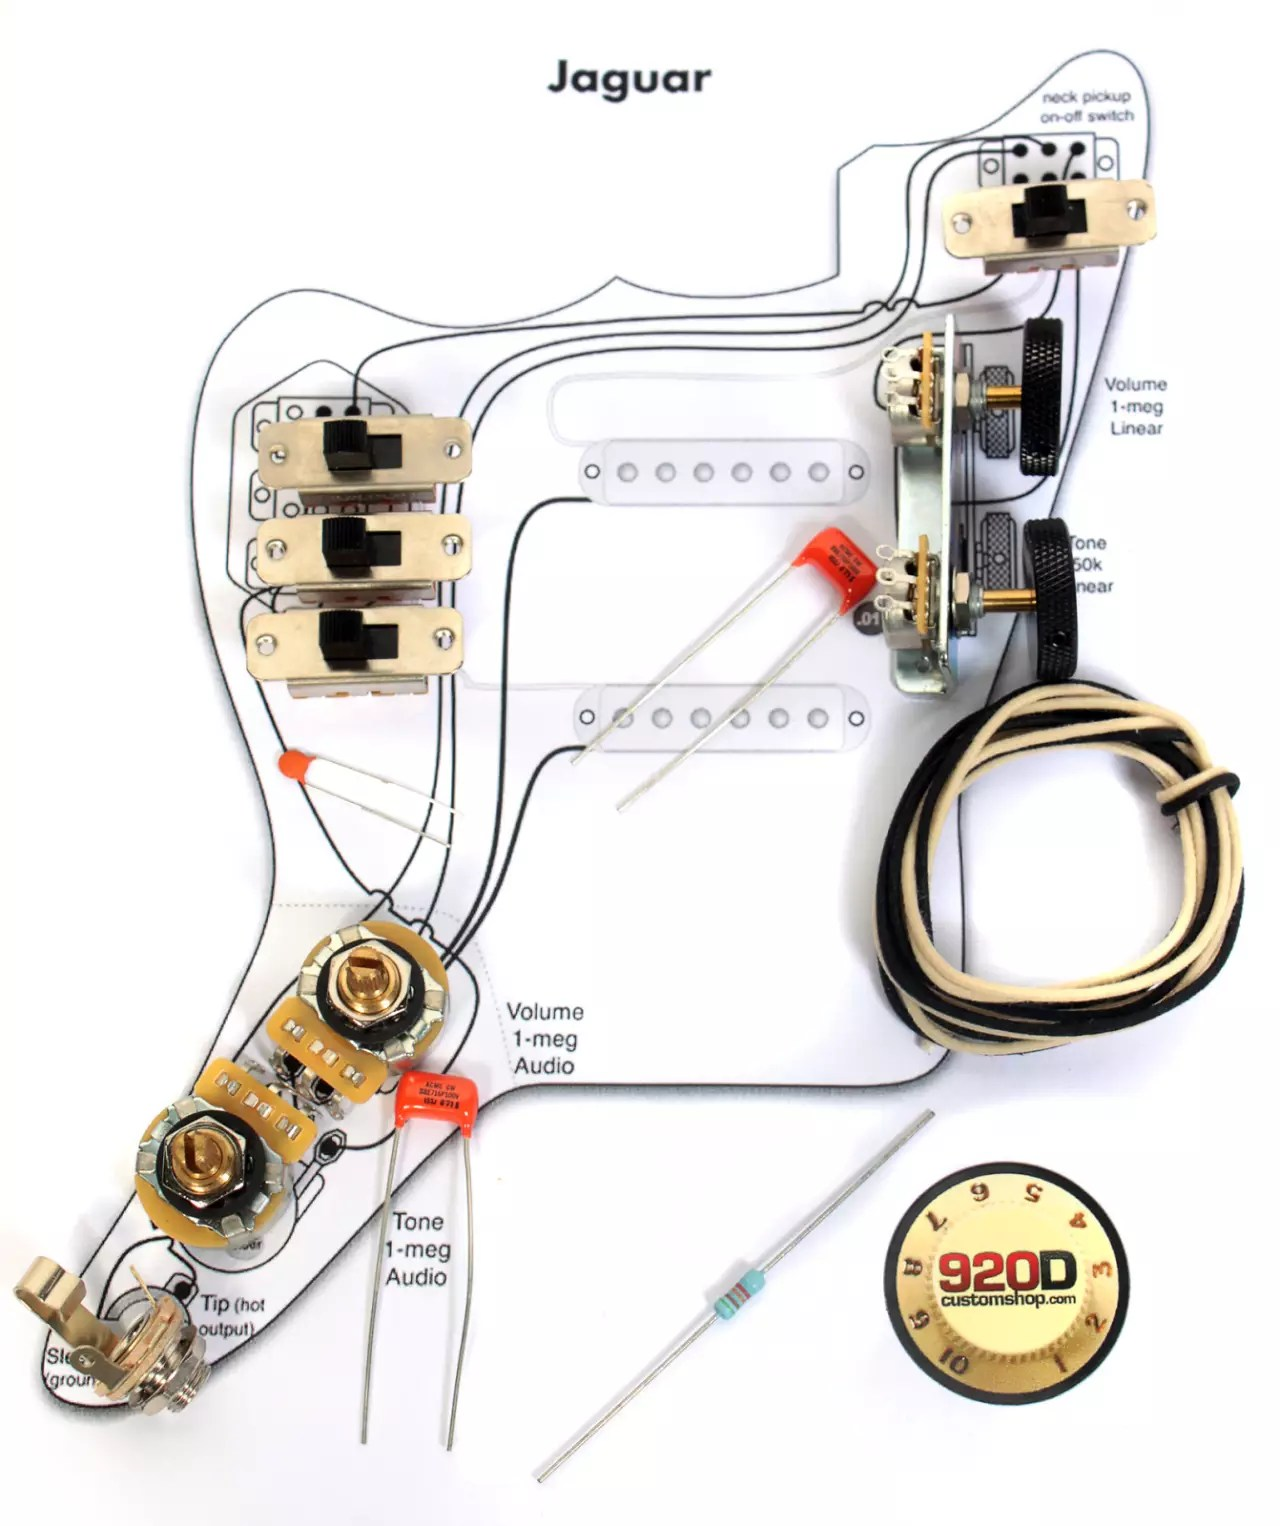 pots wiring diagram 2005 660 raptor fender vintage 3962 jaguar kit switch slider